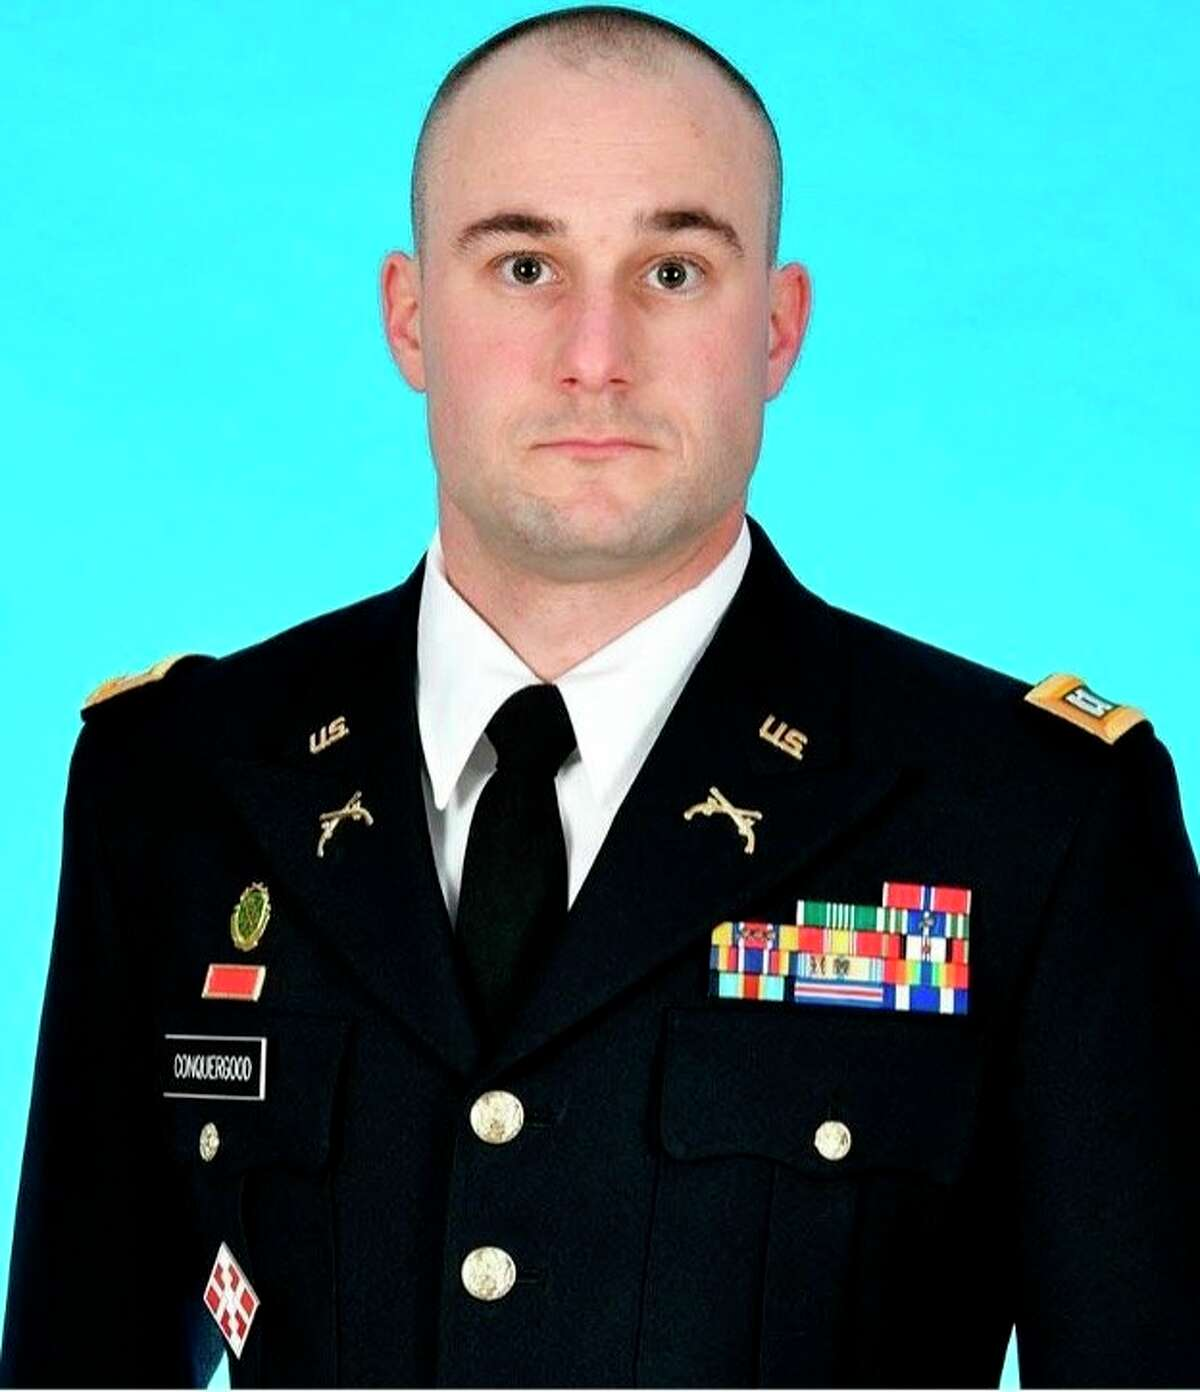 Maj. Chad Curtis Conquergood, a native of Harbor Beach, Michigan, served as part of the Department of Defense's whole-of-government COVID-19 response under Task Force 46. (Courtesy Photo)